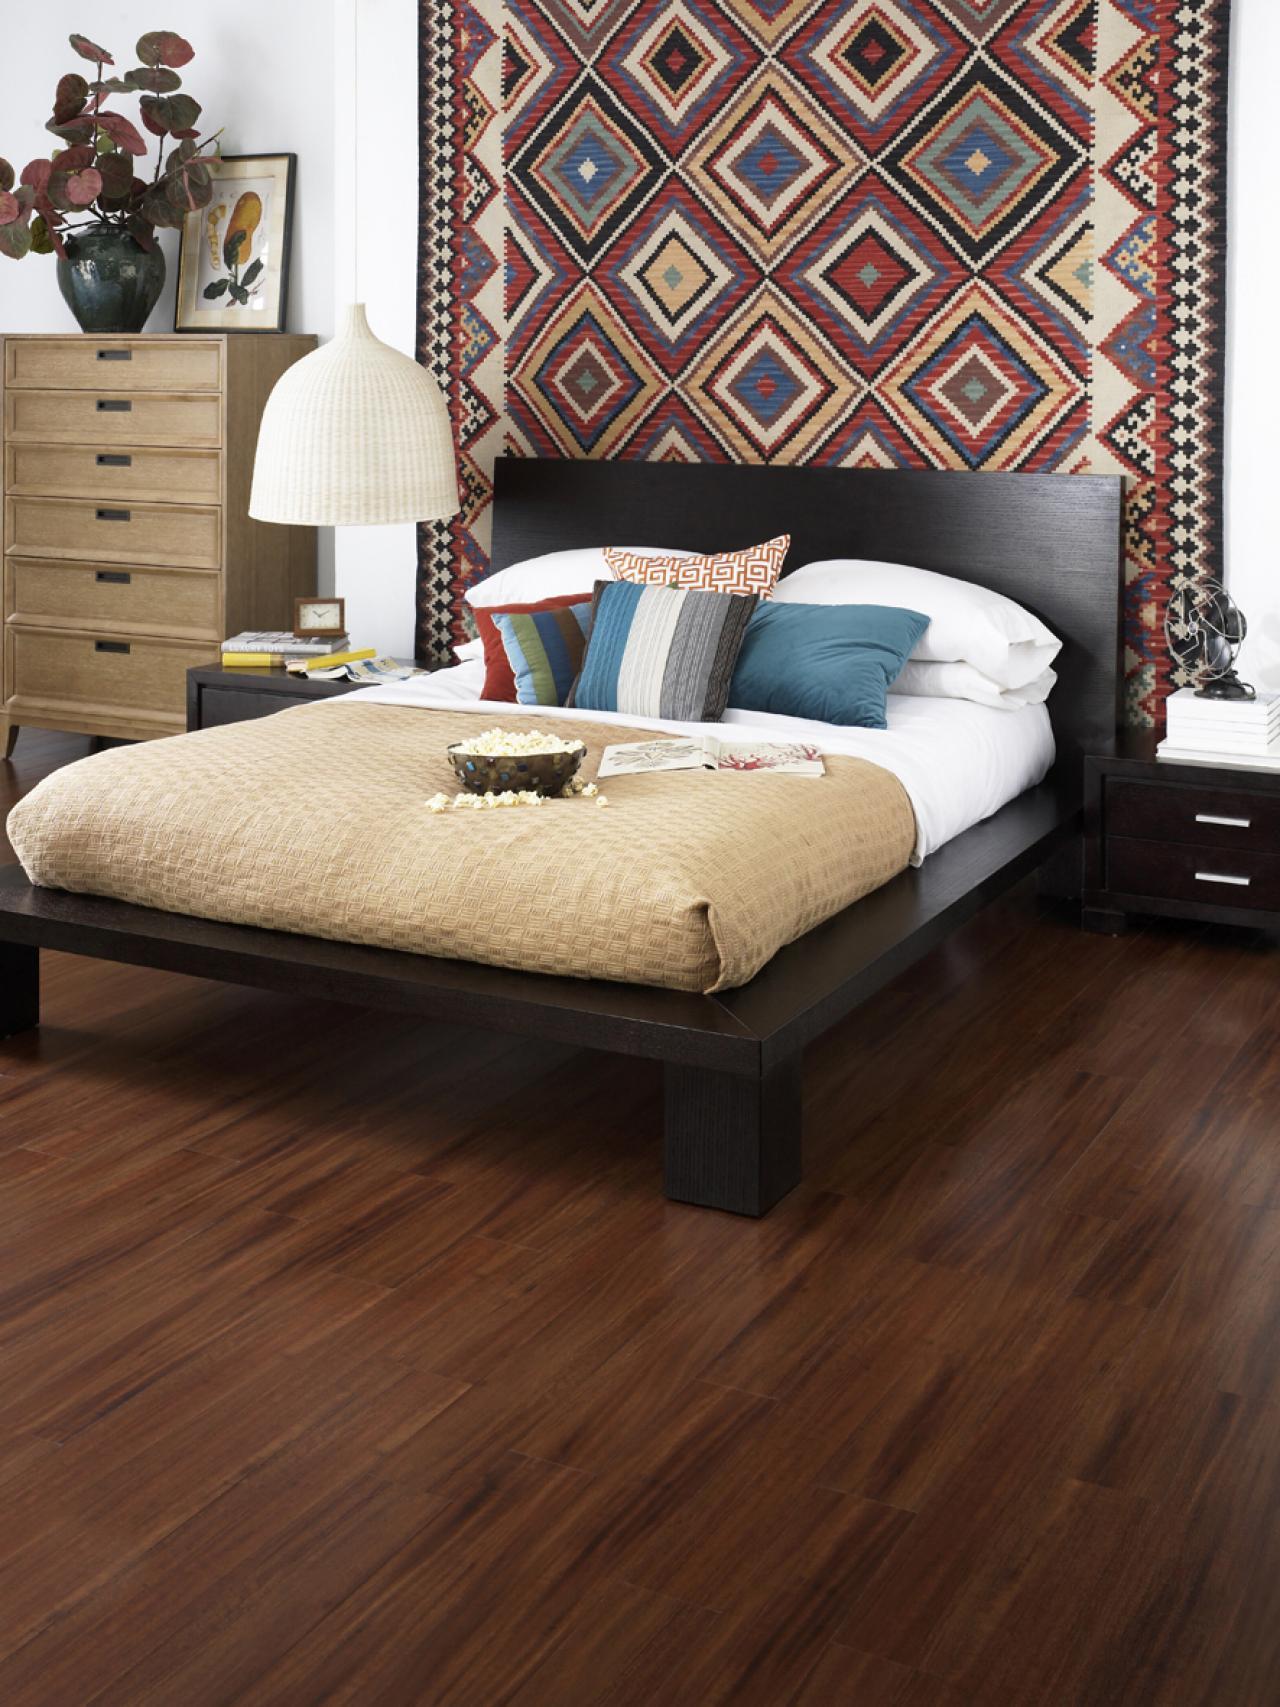 Bedroom flooring ideas and options pictures more hgtv for Bedroom flooring options